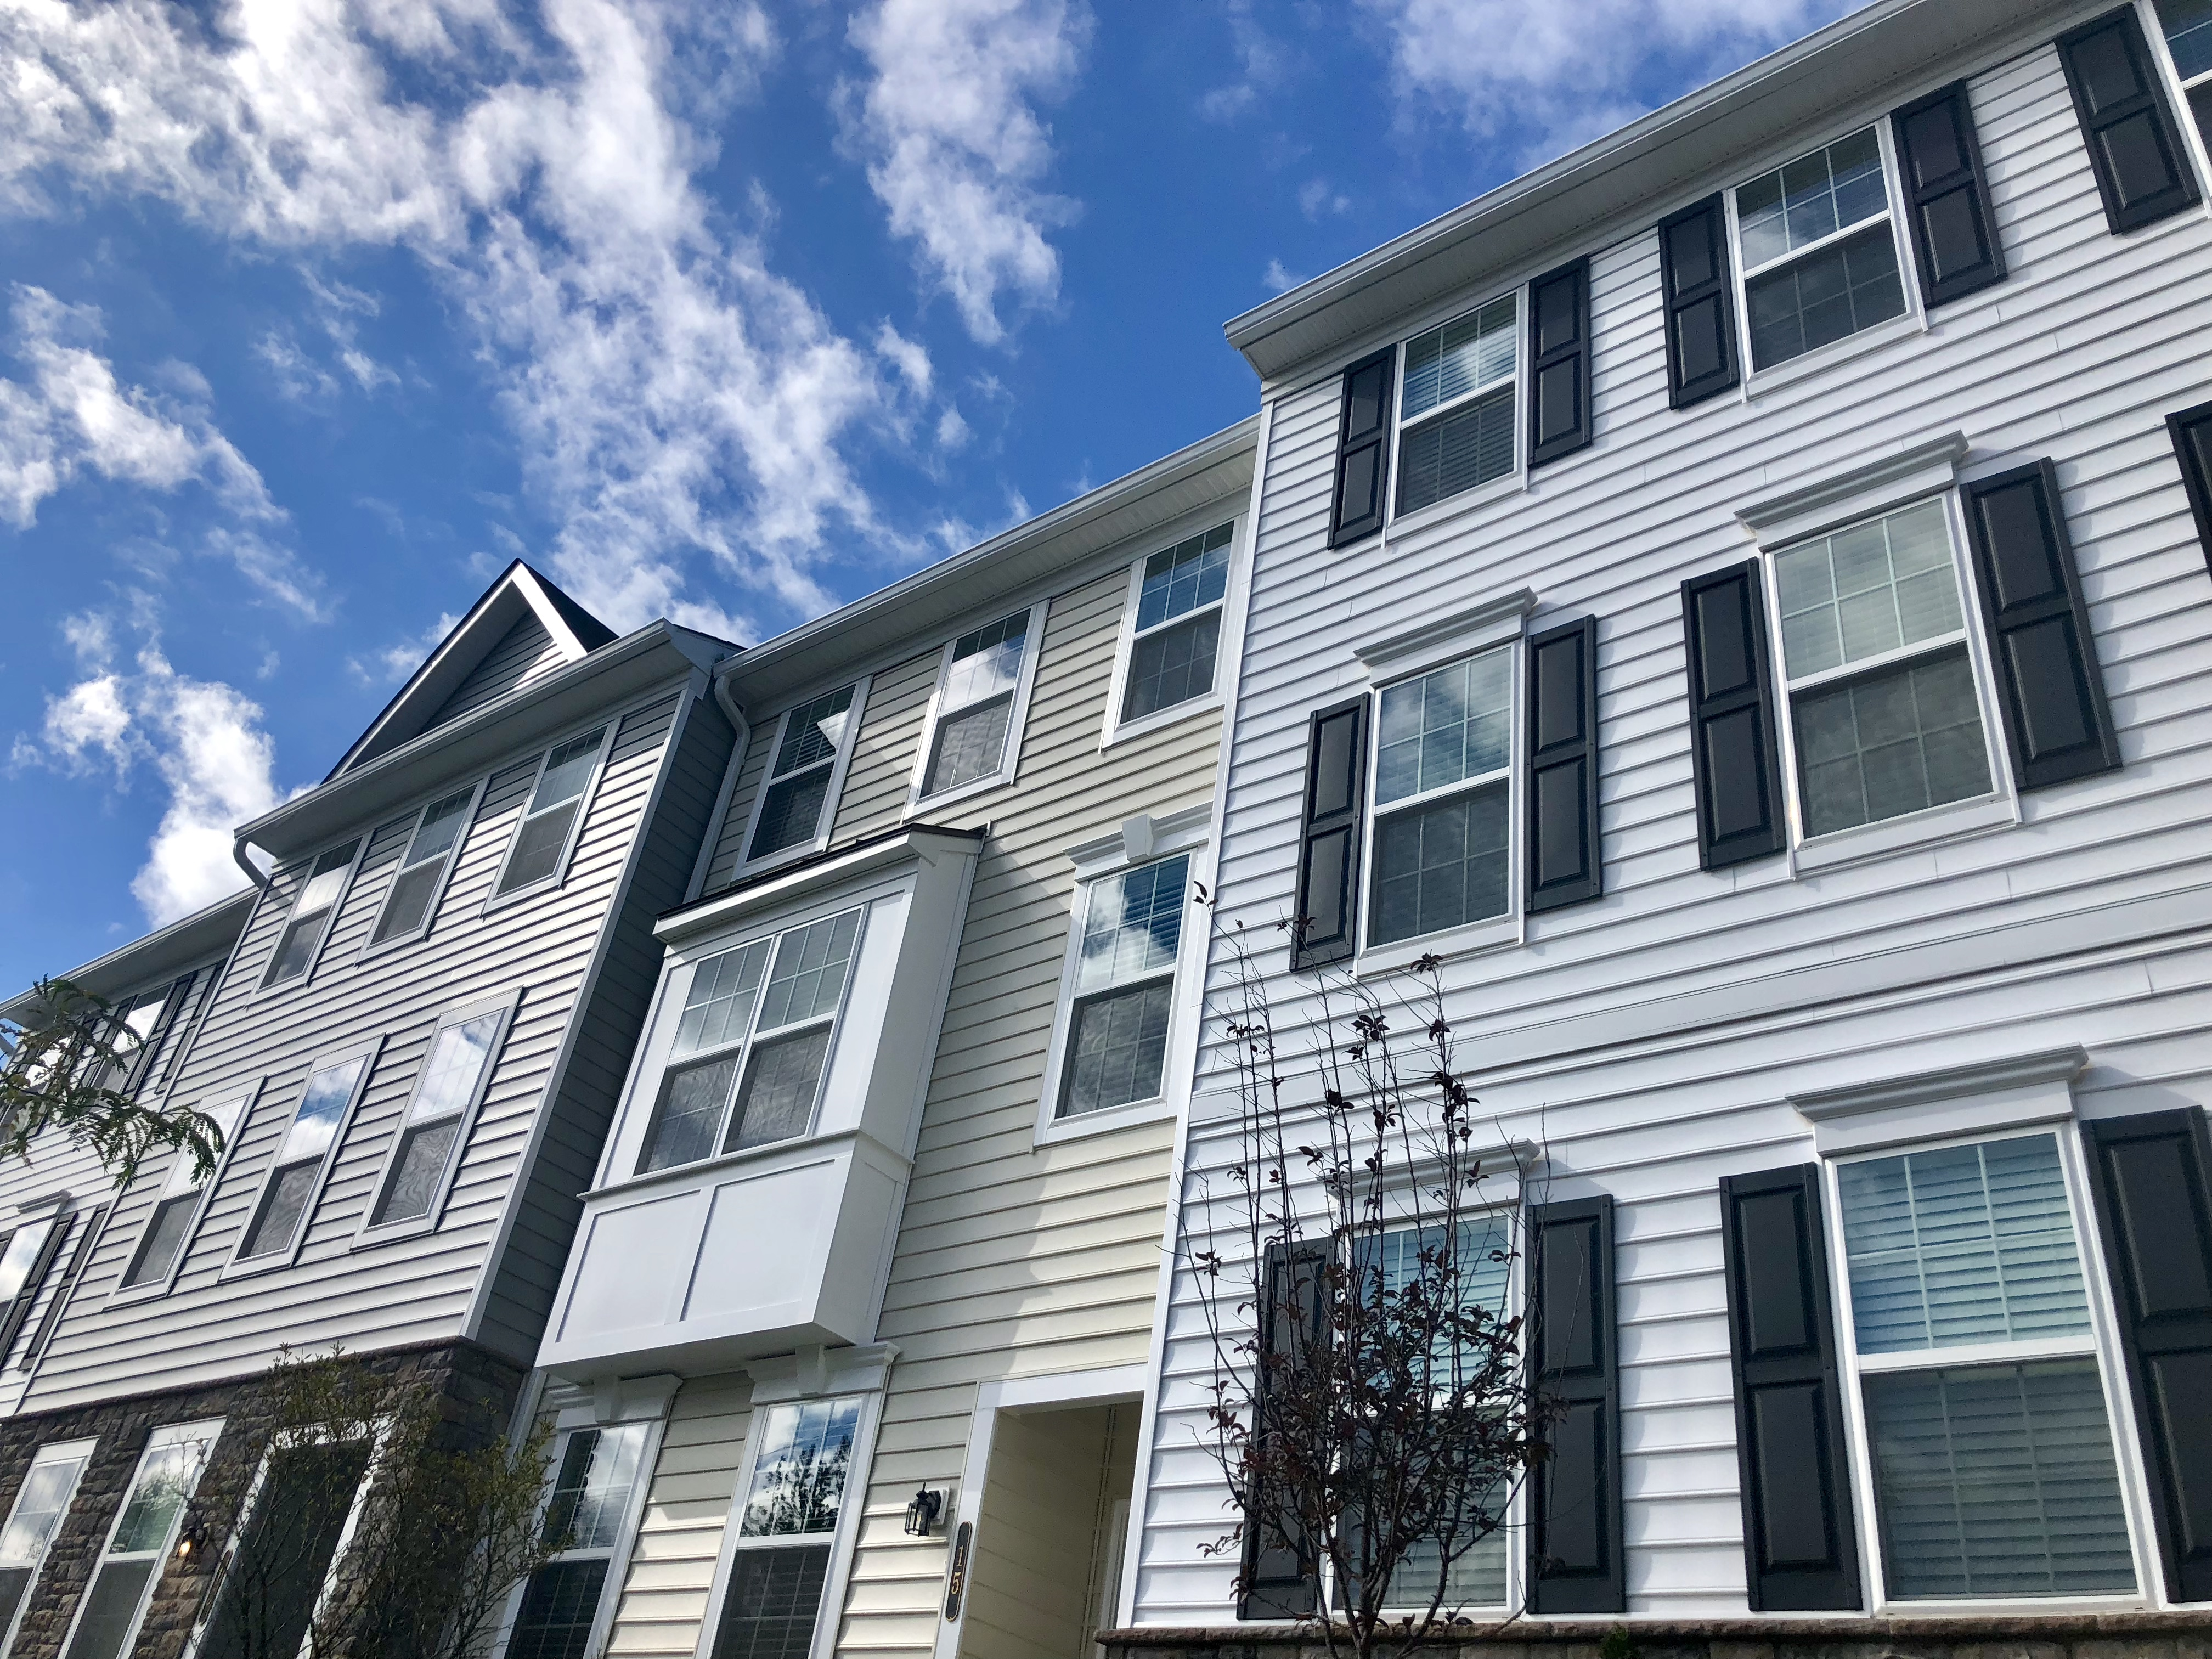 A block of townhouses in Hatboro Station, a new residential community in Hatboro, Pa.